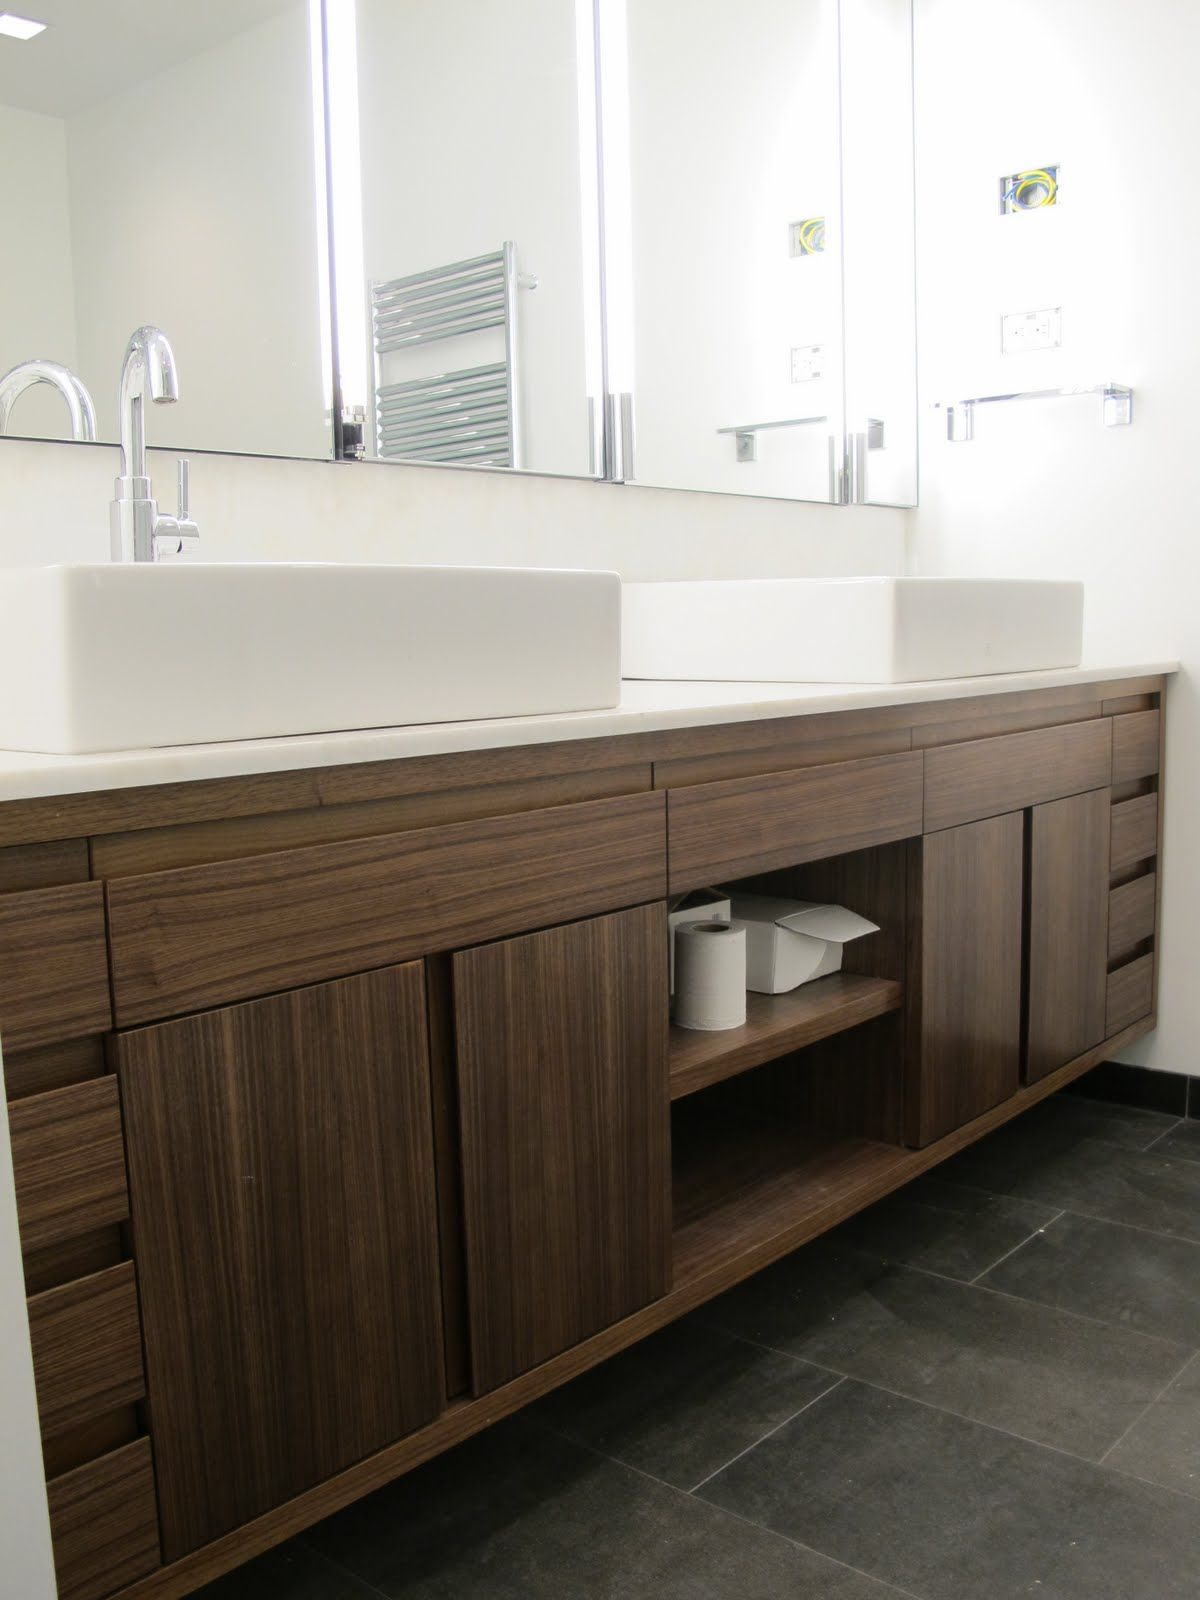 Bathroom, Marvelous Floating Vanity With Cool Chrome Taps And Astonishing  White Double Sink Also Double Sink With Storage And Three Drawers Also Arch  Chrome ...